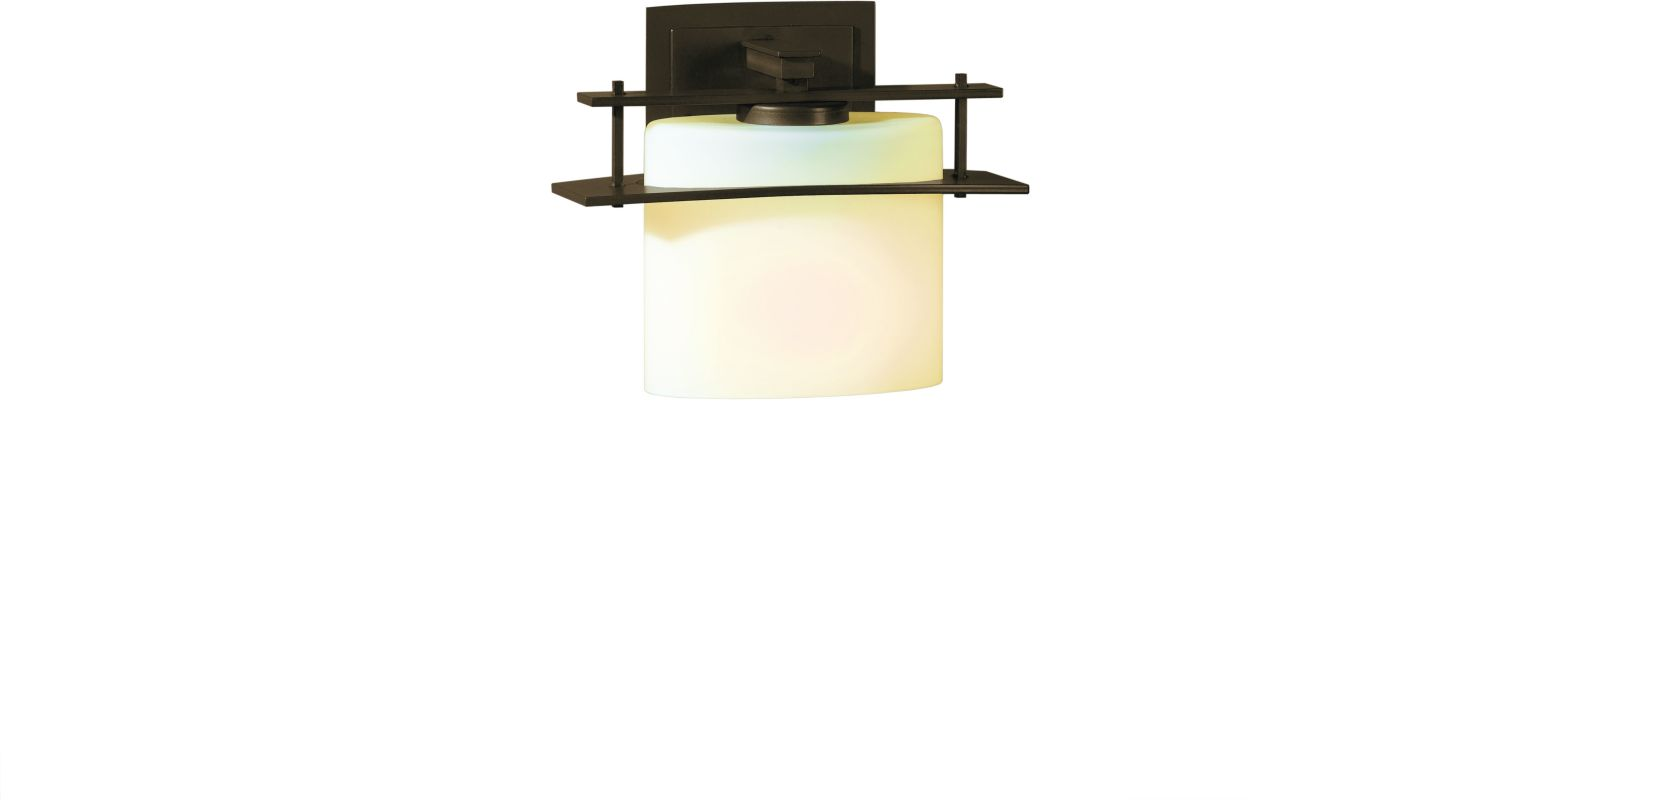 Hubbardton Forge 207521 Single Light Down Lighting ADA Wall Sconce Sale $457.60 ITEM#: 1163975 MODEL# :207521-05 :